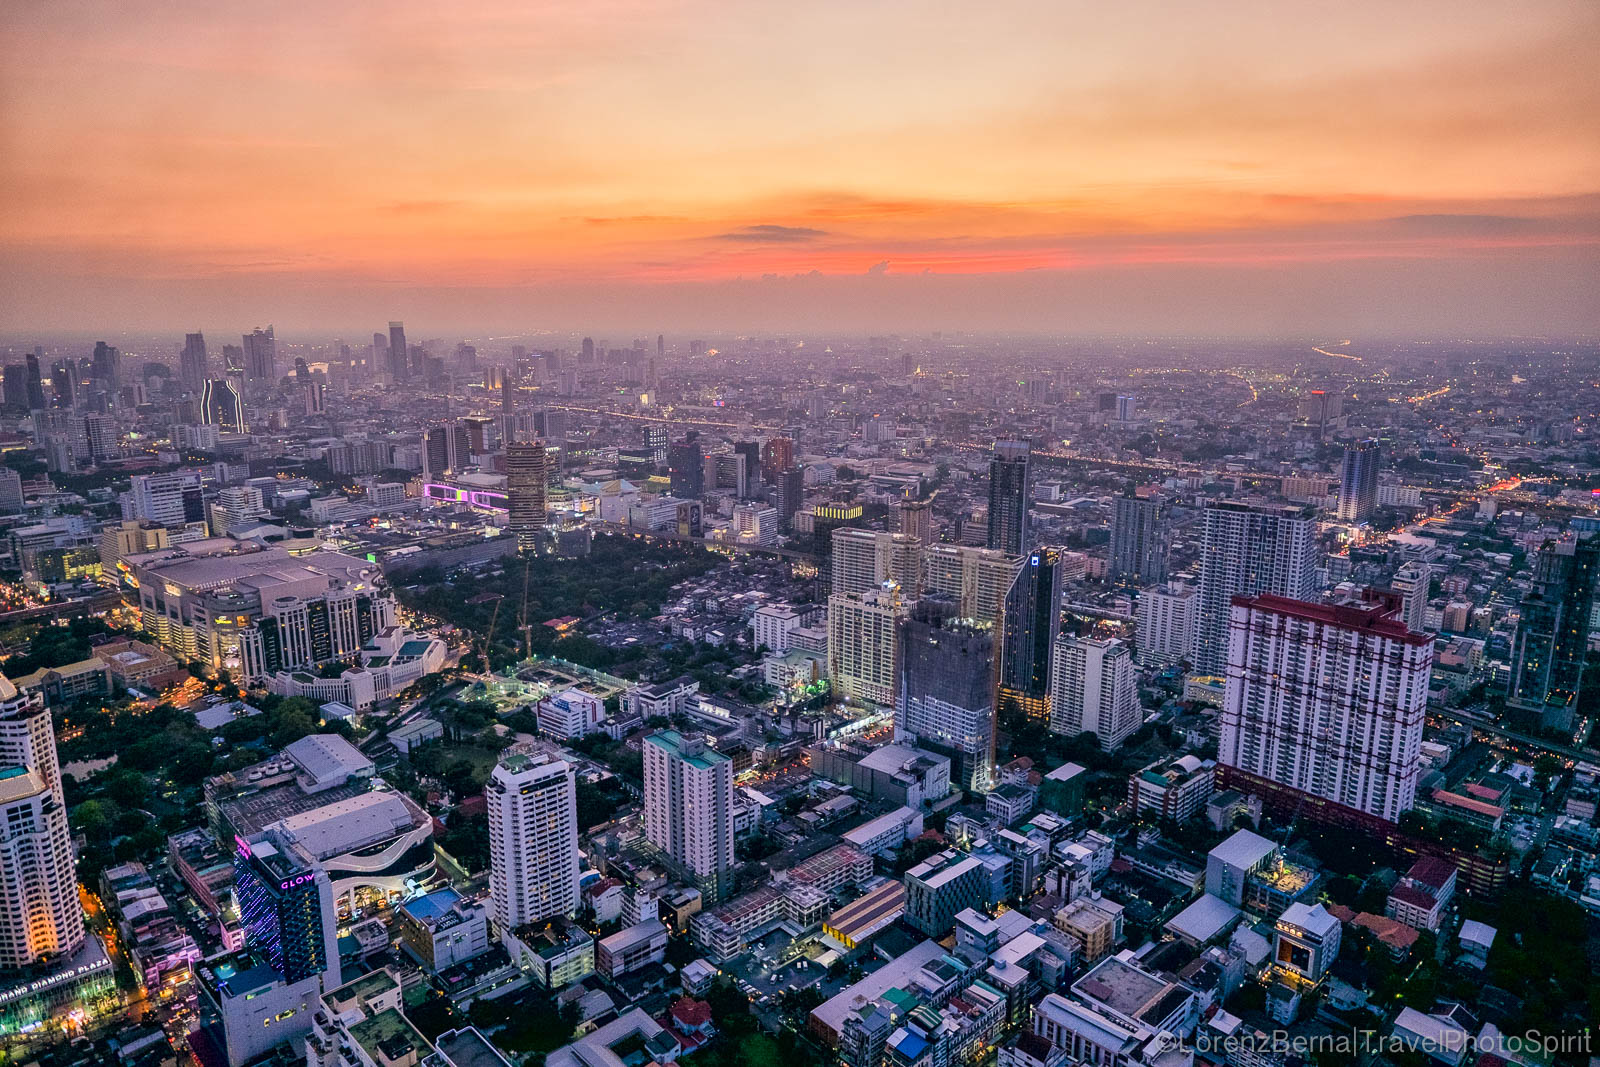 Bangkok Cityscape at sunset from the top of the Baiyoke Sky Tower - A Lorenz Berna Photography of Bangkok